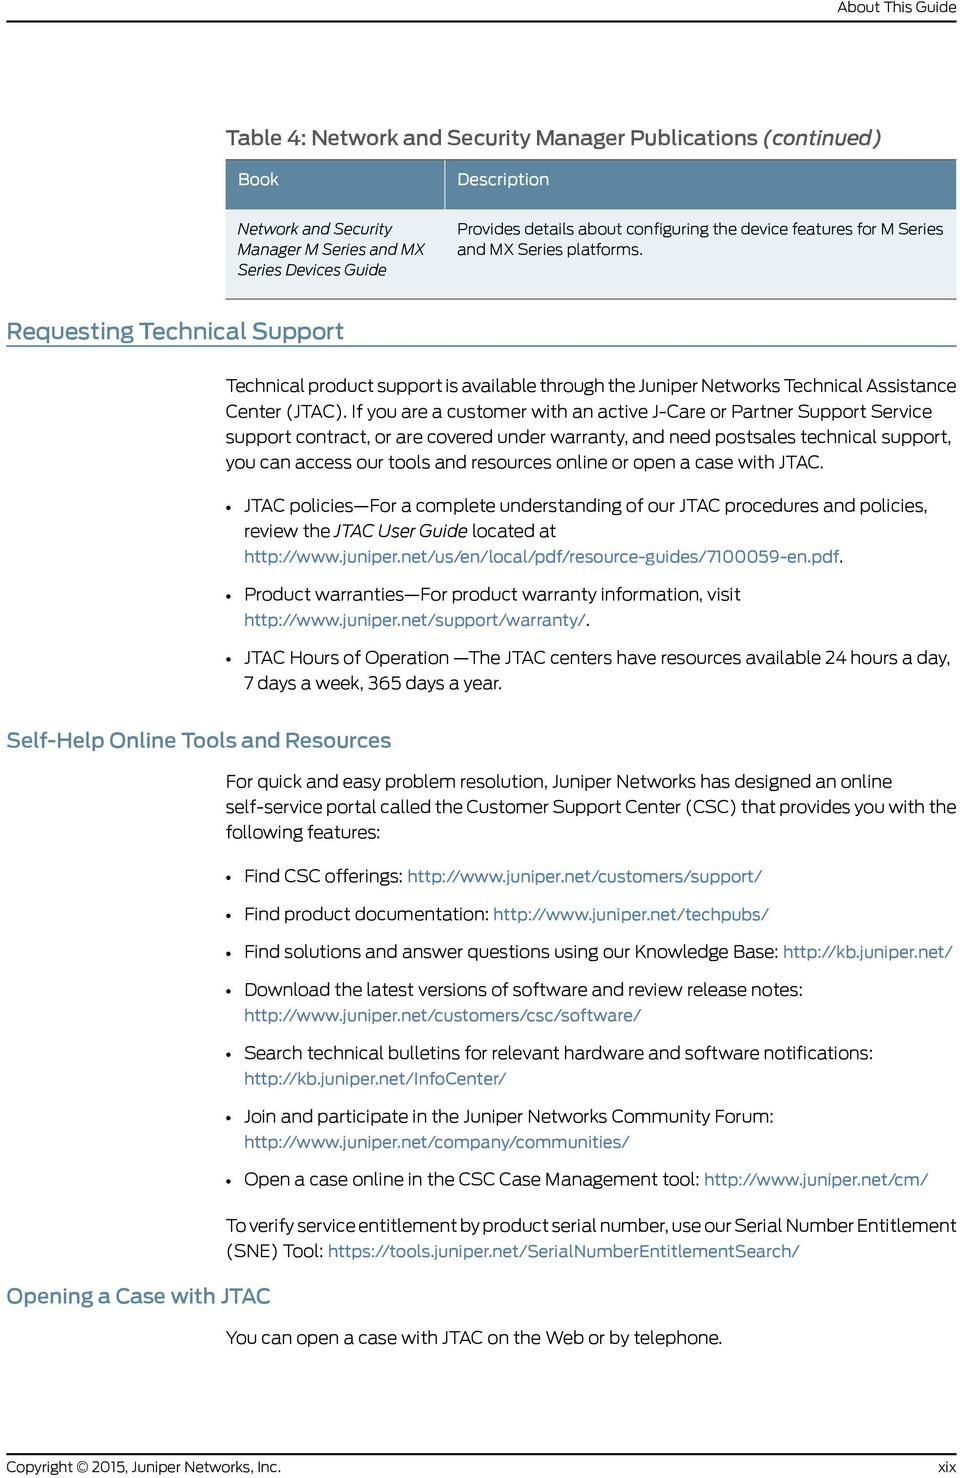 Juniper networks network and security manager | networkscreen. Com.